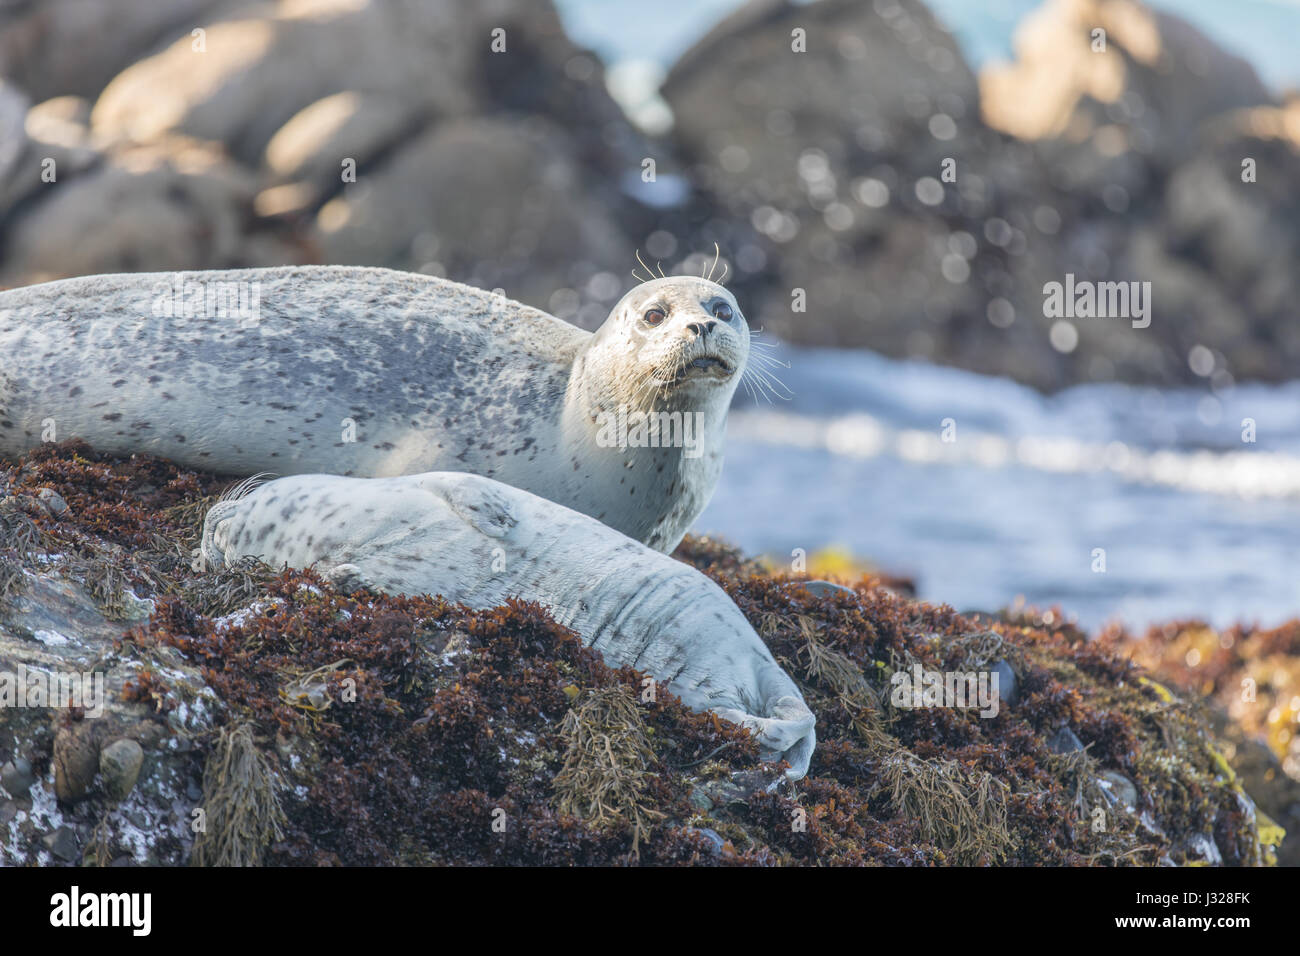 Spotted Adult Male Harbor Seal (Phoca vitulina) Watching over his sleeping baby. Stock Photo